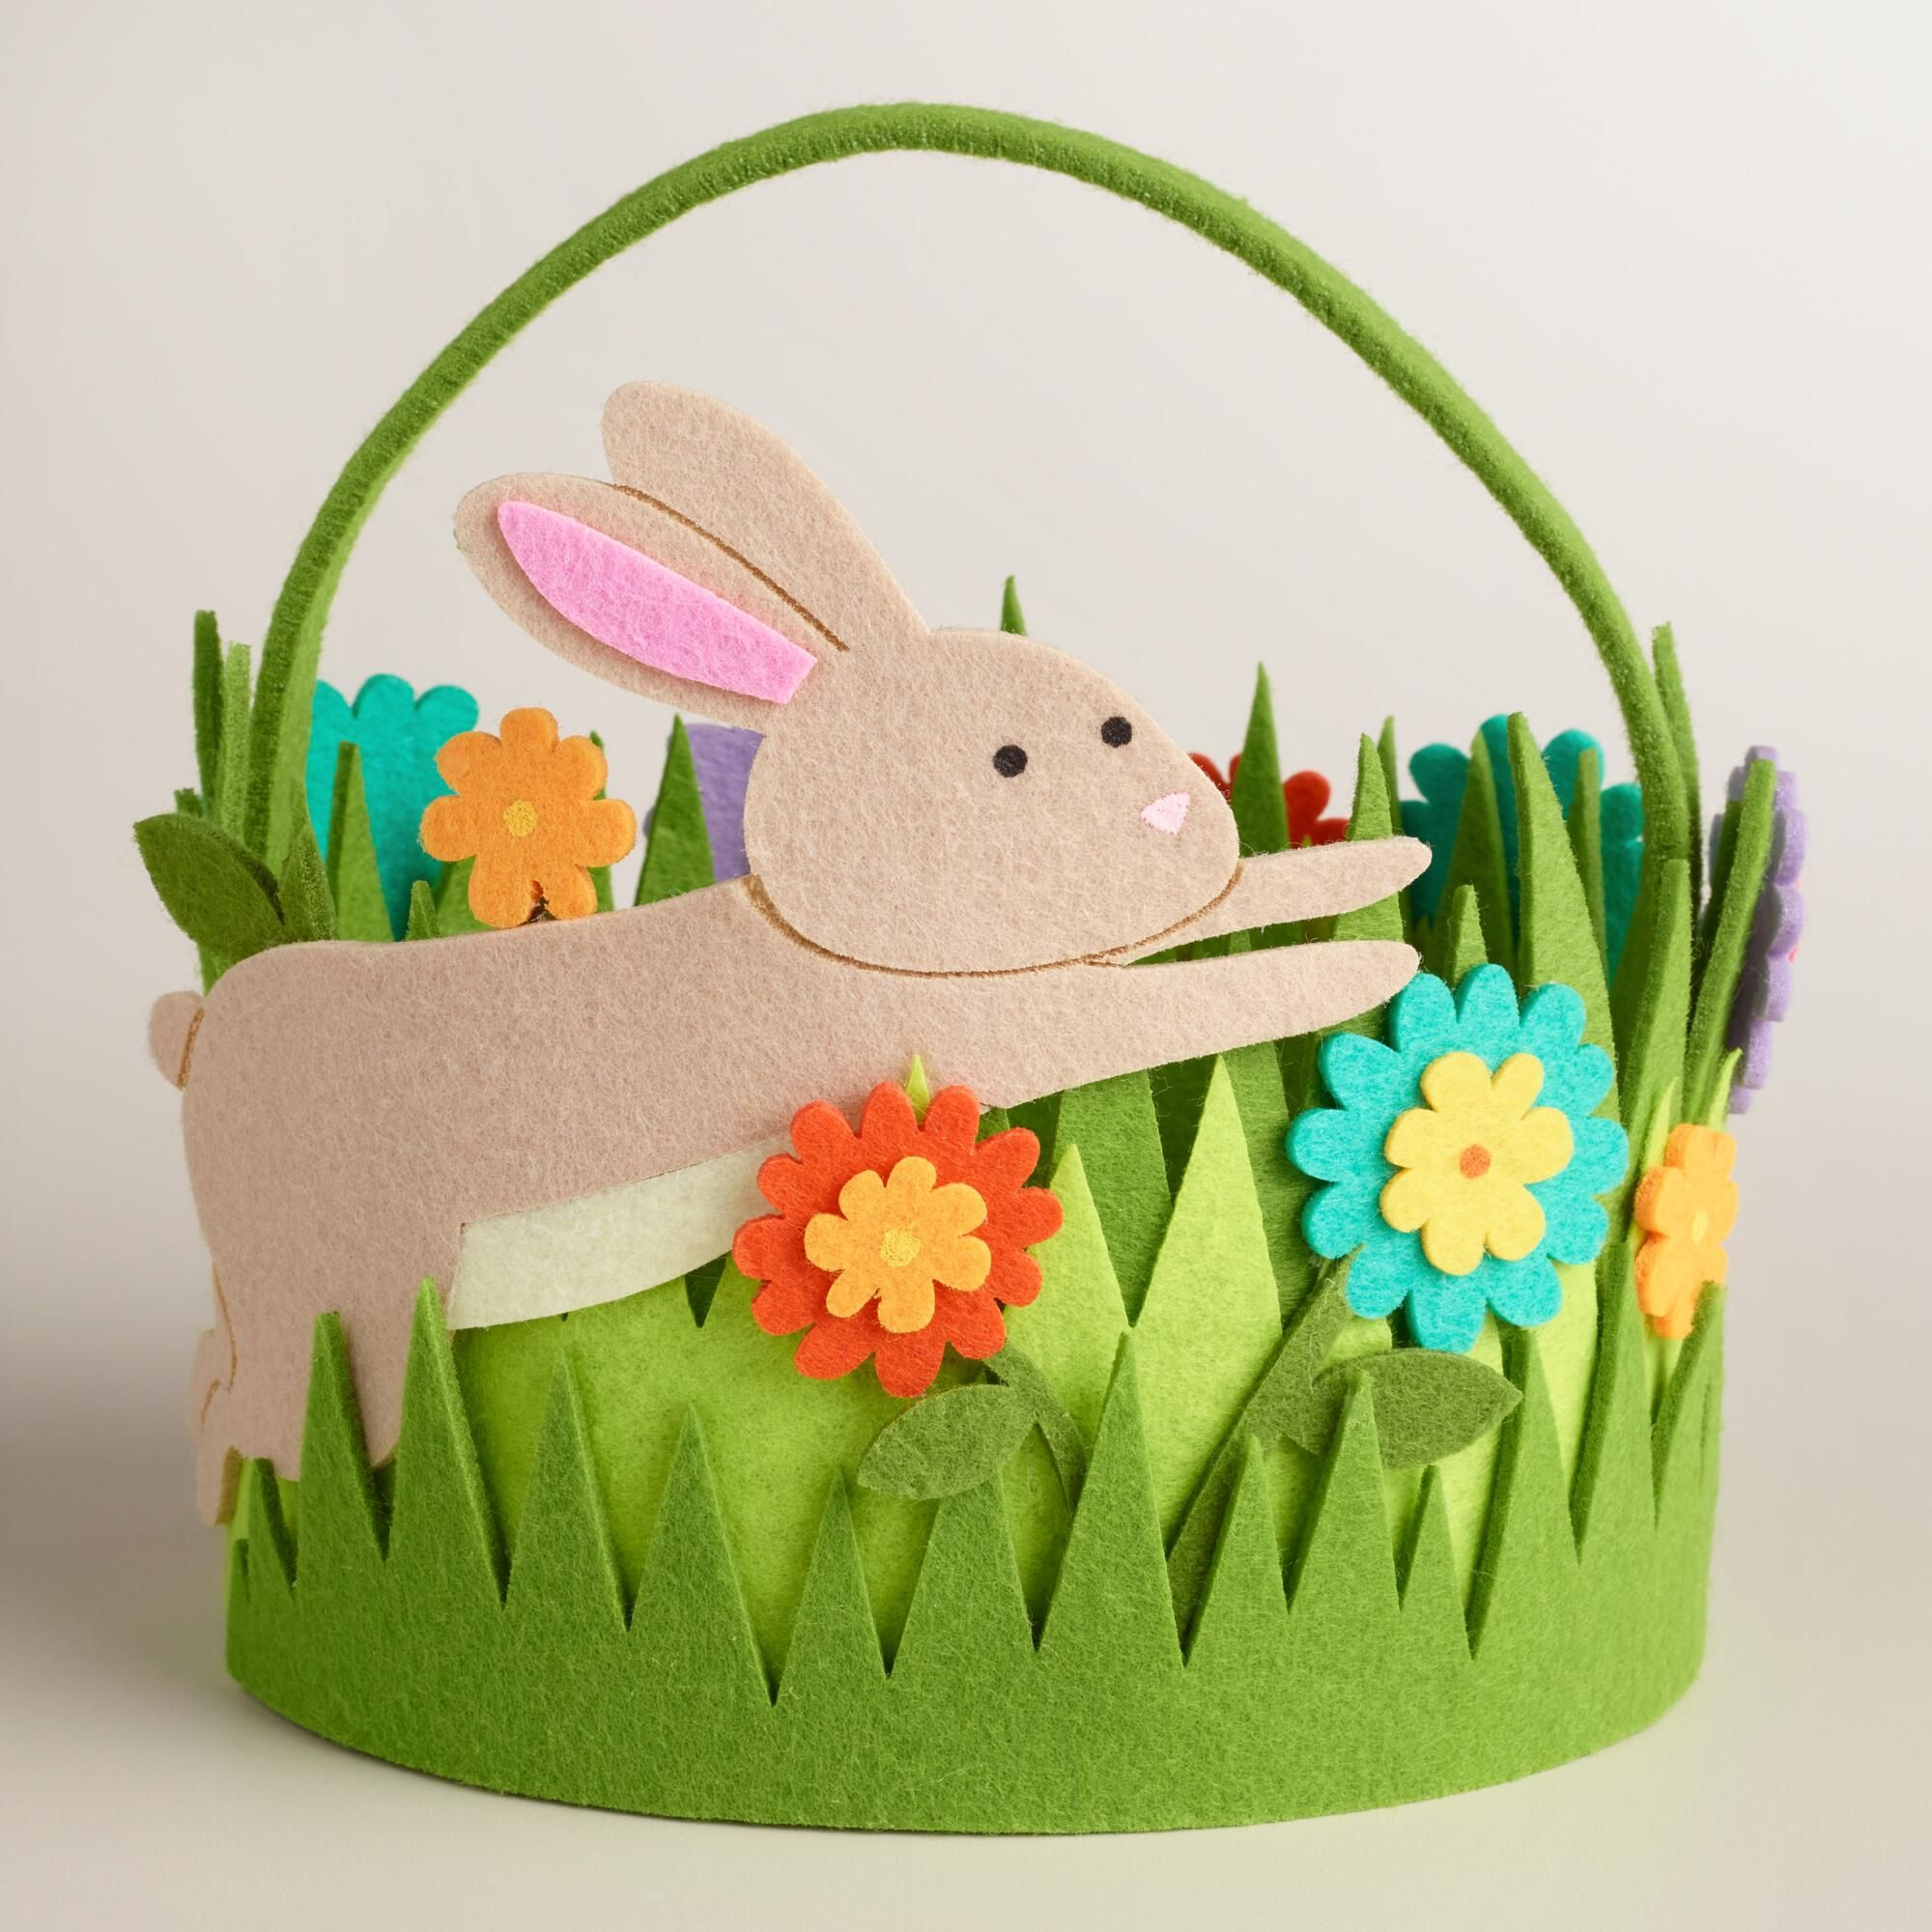 Crafted of felt in bright spring colors our exclusive oval easter crafted of felt in bright spring colors our exclusive oval easter basket features an adorable negle Image collections